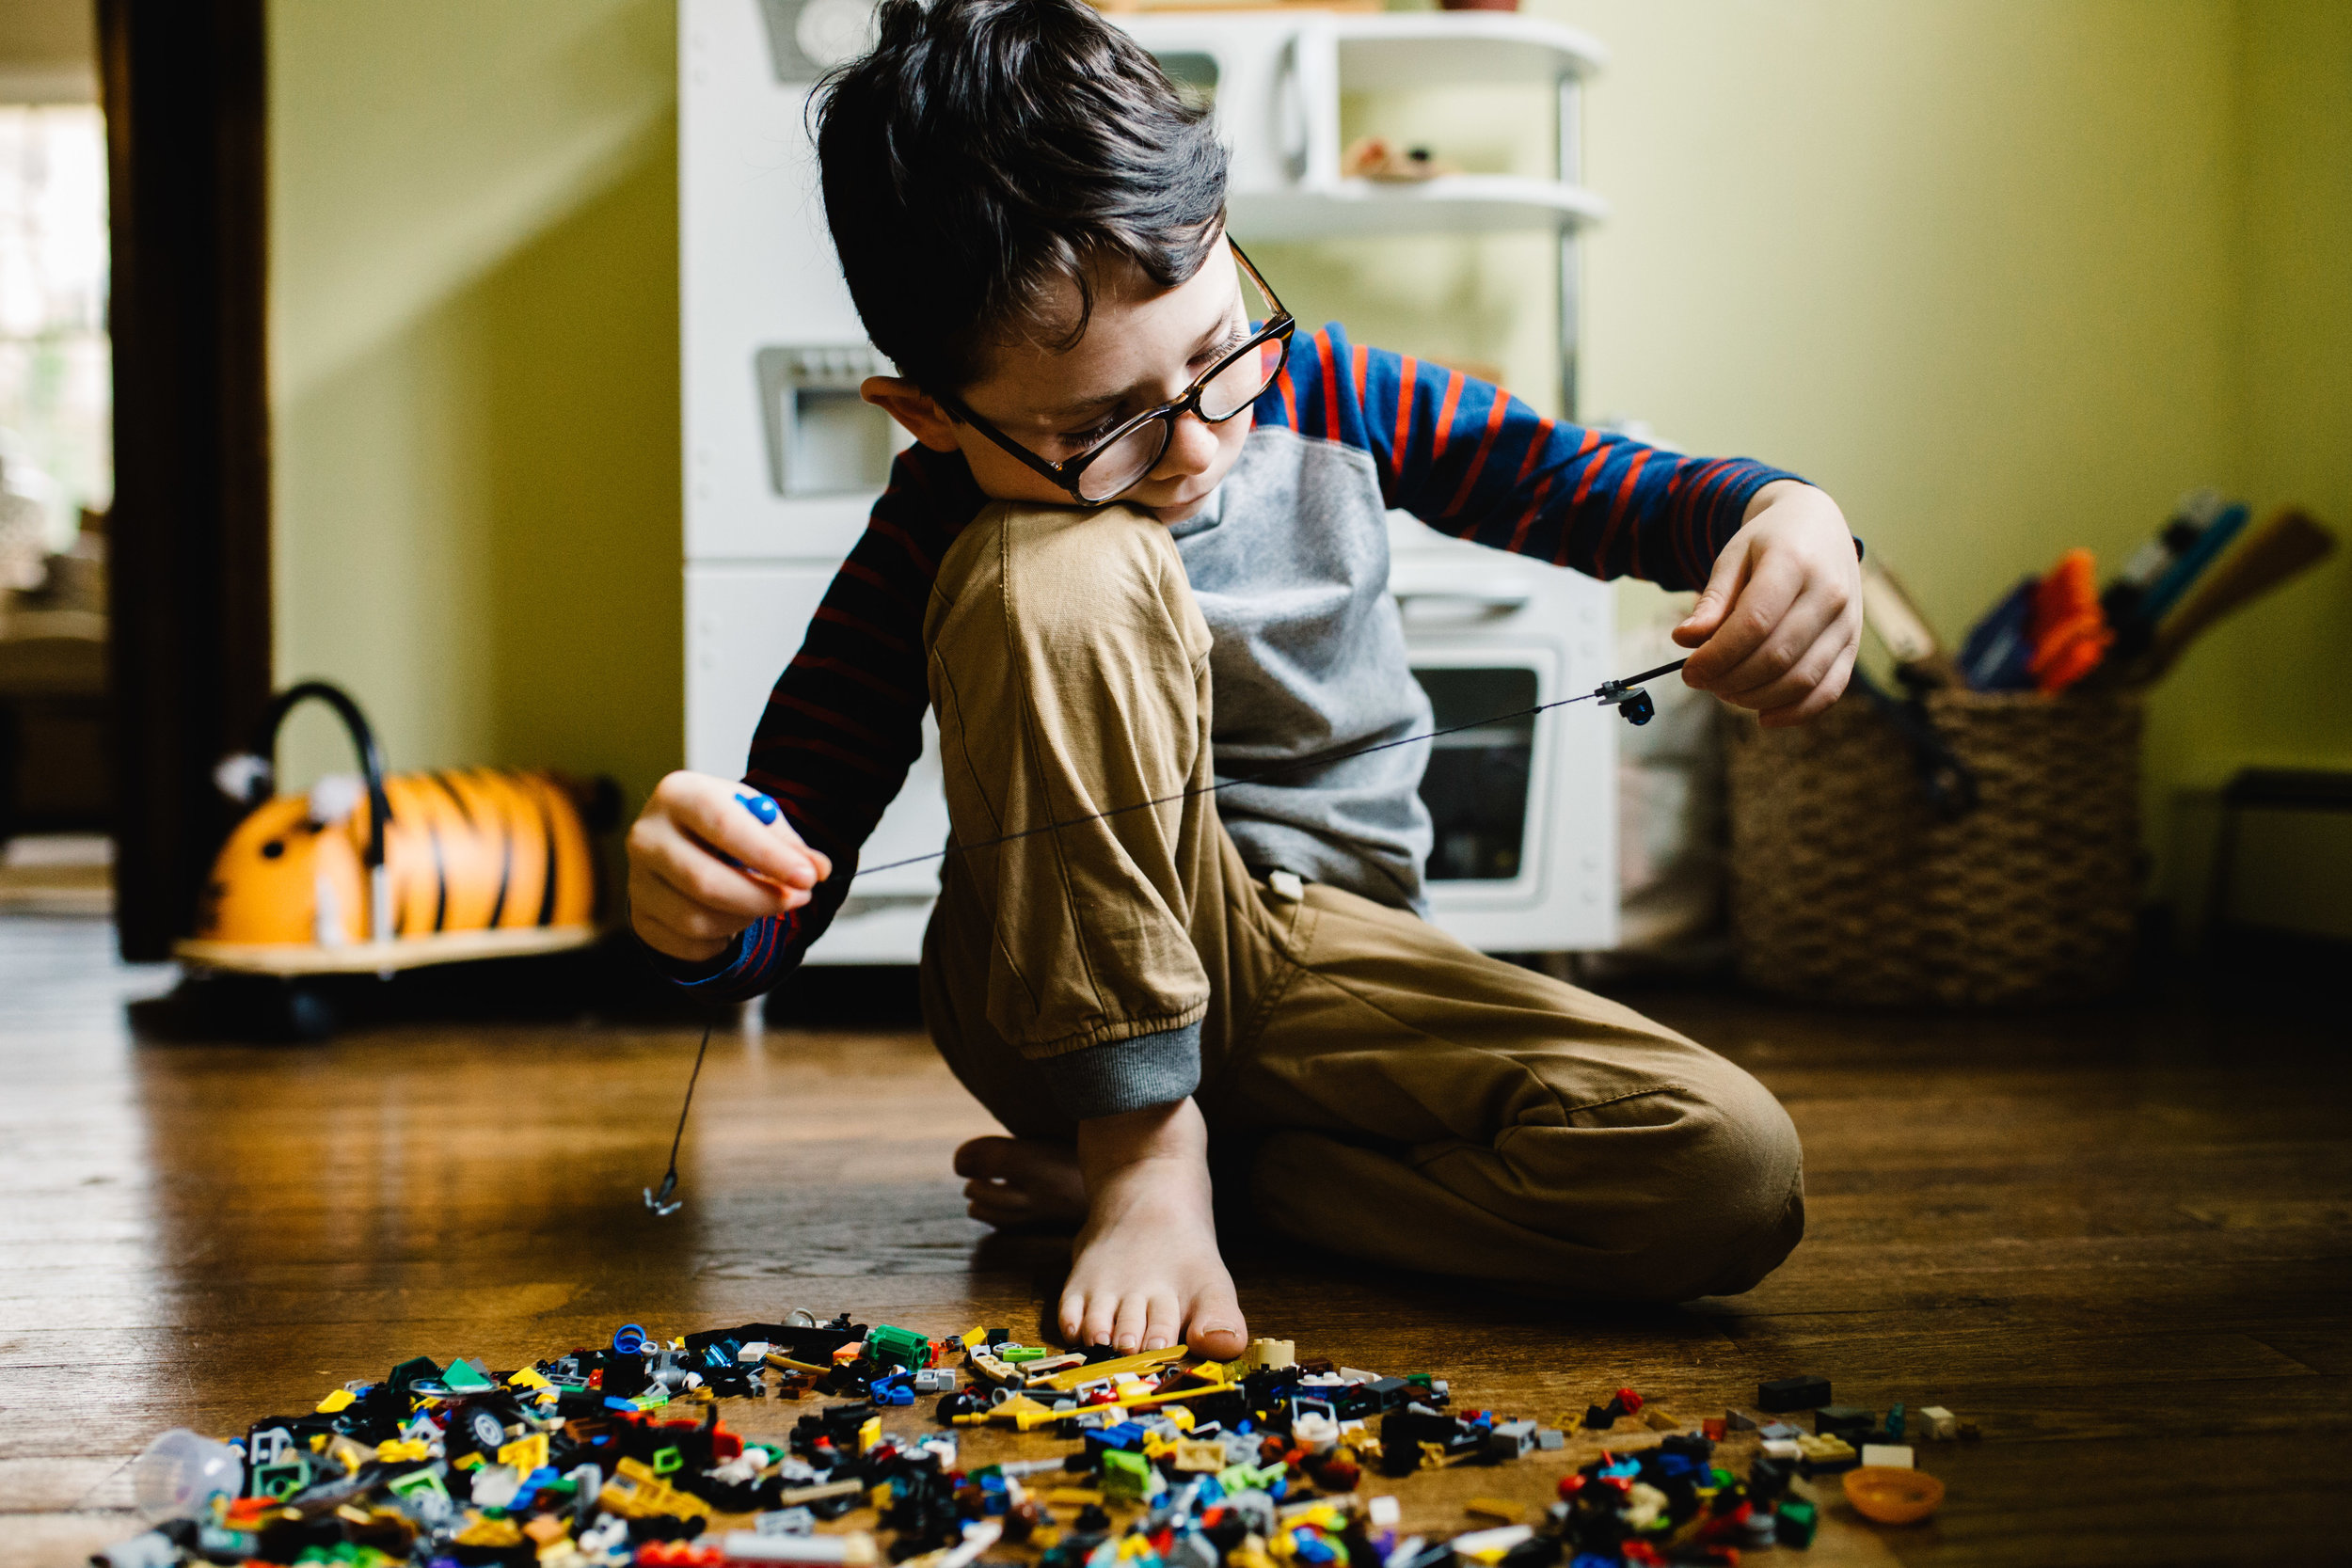 Lifestyle Photography | LEGO | Jennifer Tippett 365 project